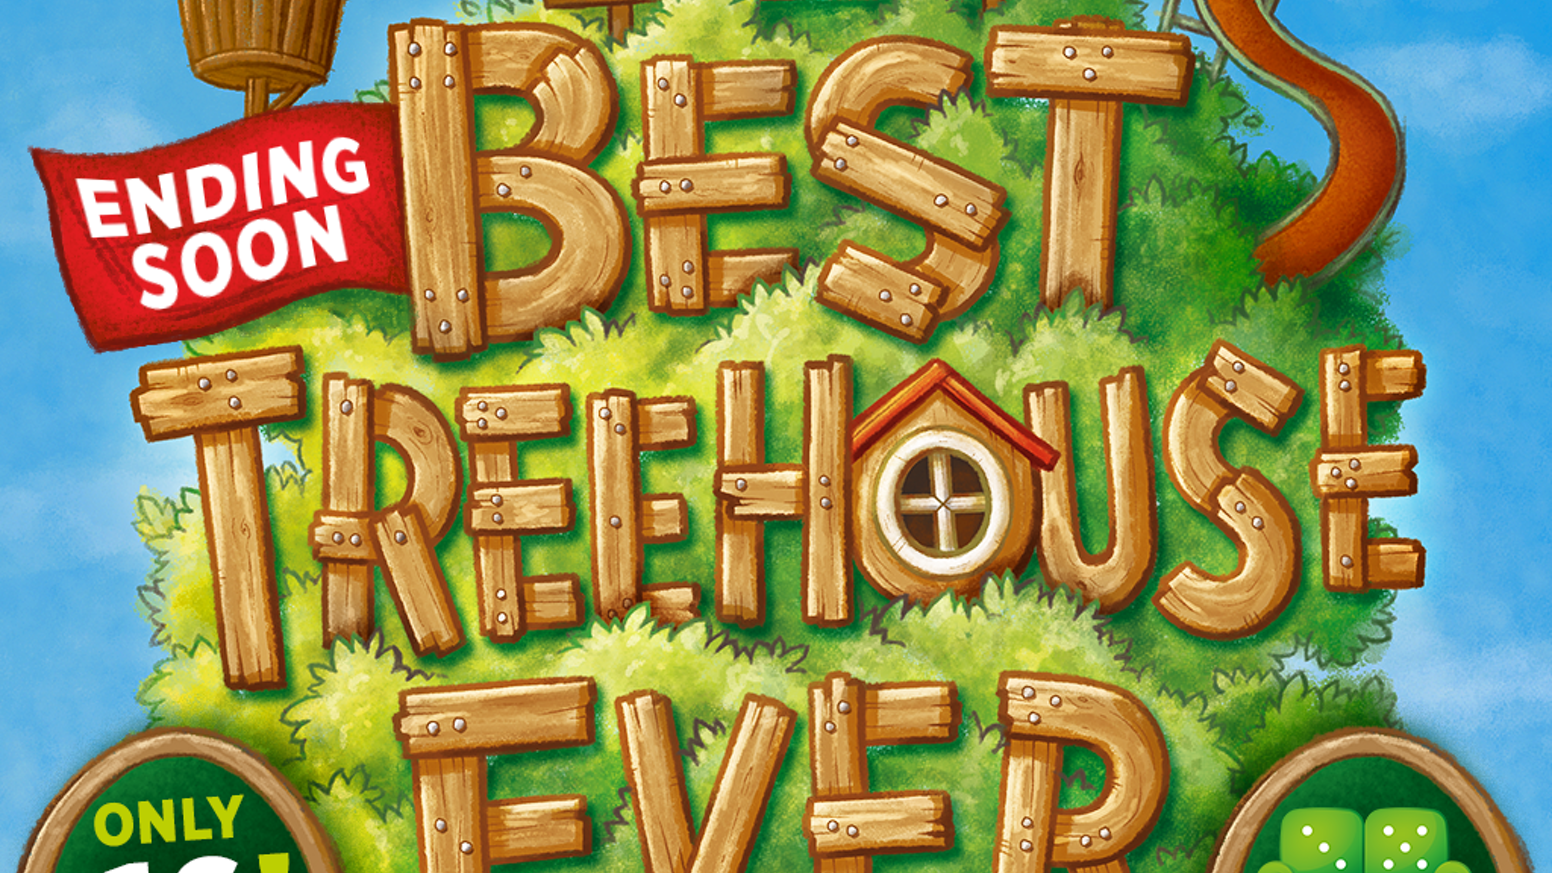 Best Treehouse Ever by Scott Almes and Green Couch Games! by Jason on party designer, target designer, outdoor designer, studio designer, safari designer, kitchen designer, wedding designer, cabin designer, robert rodriguez designer, tent designer,